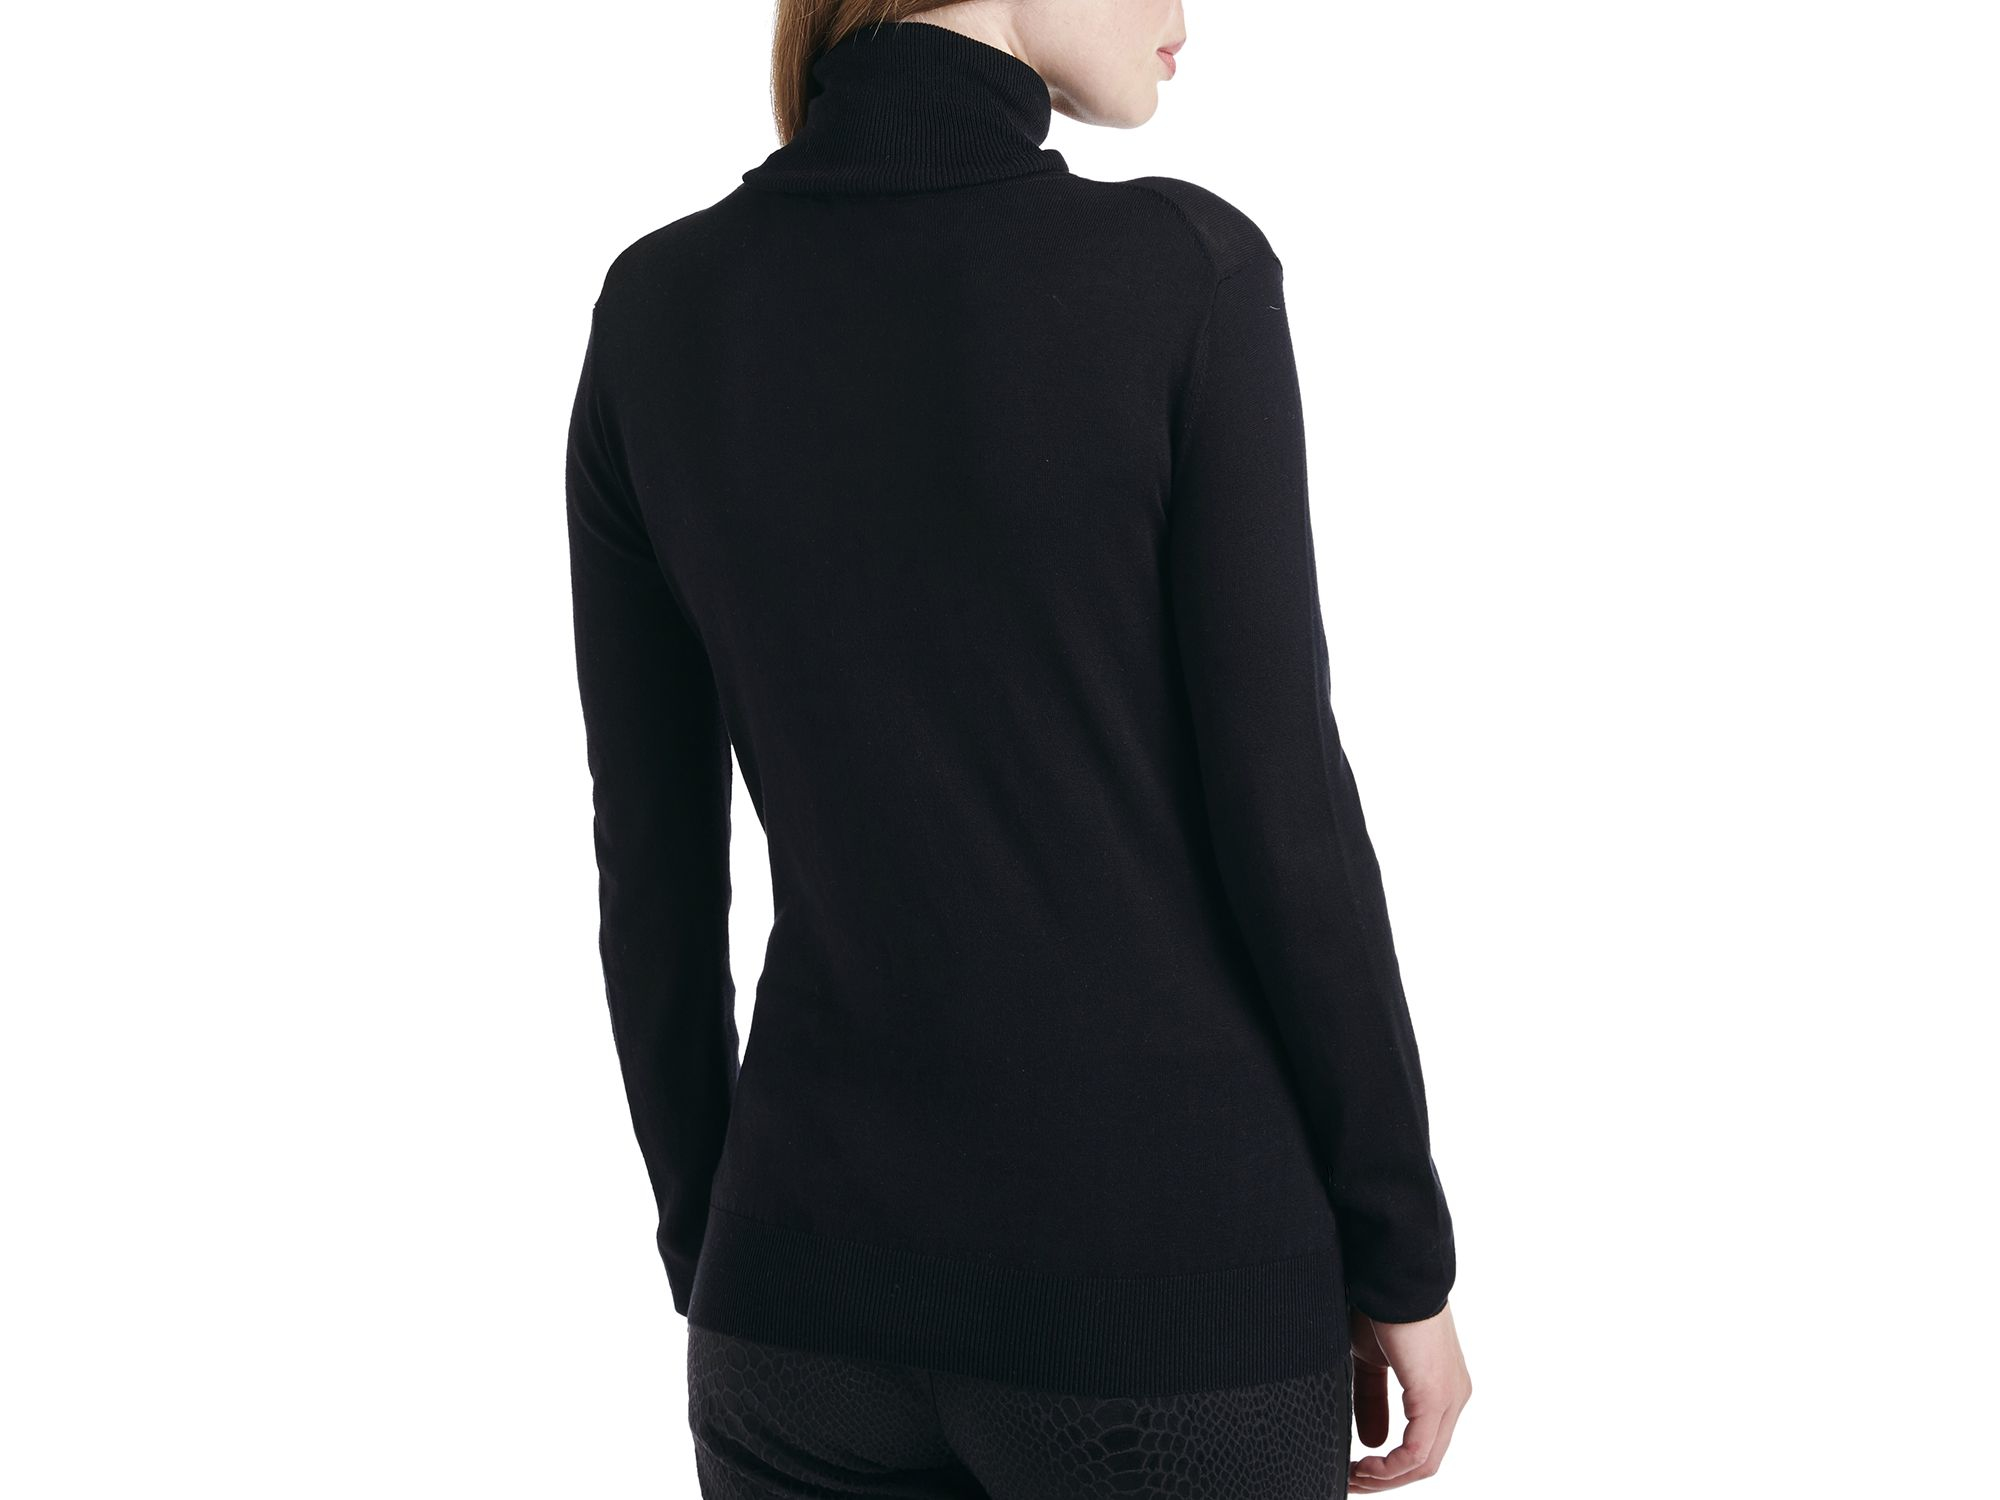 Ted baker Vione Silk-cotton Turtleneck Sweater in Black | Lyst